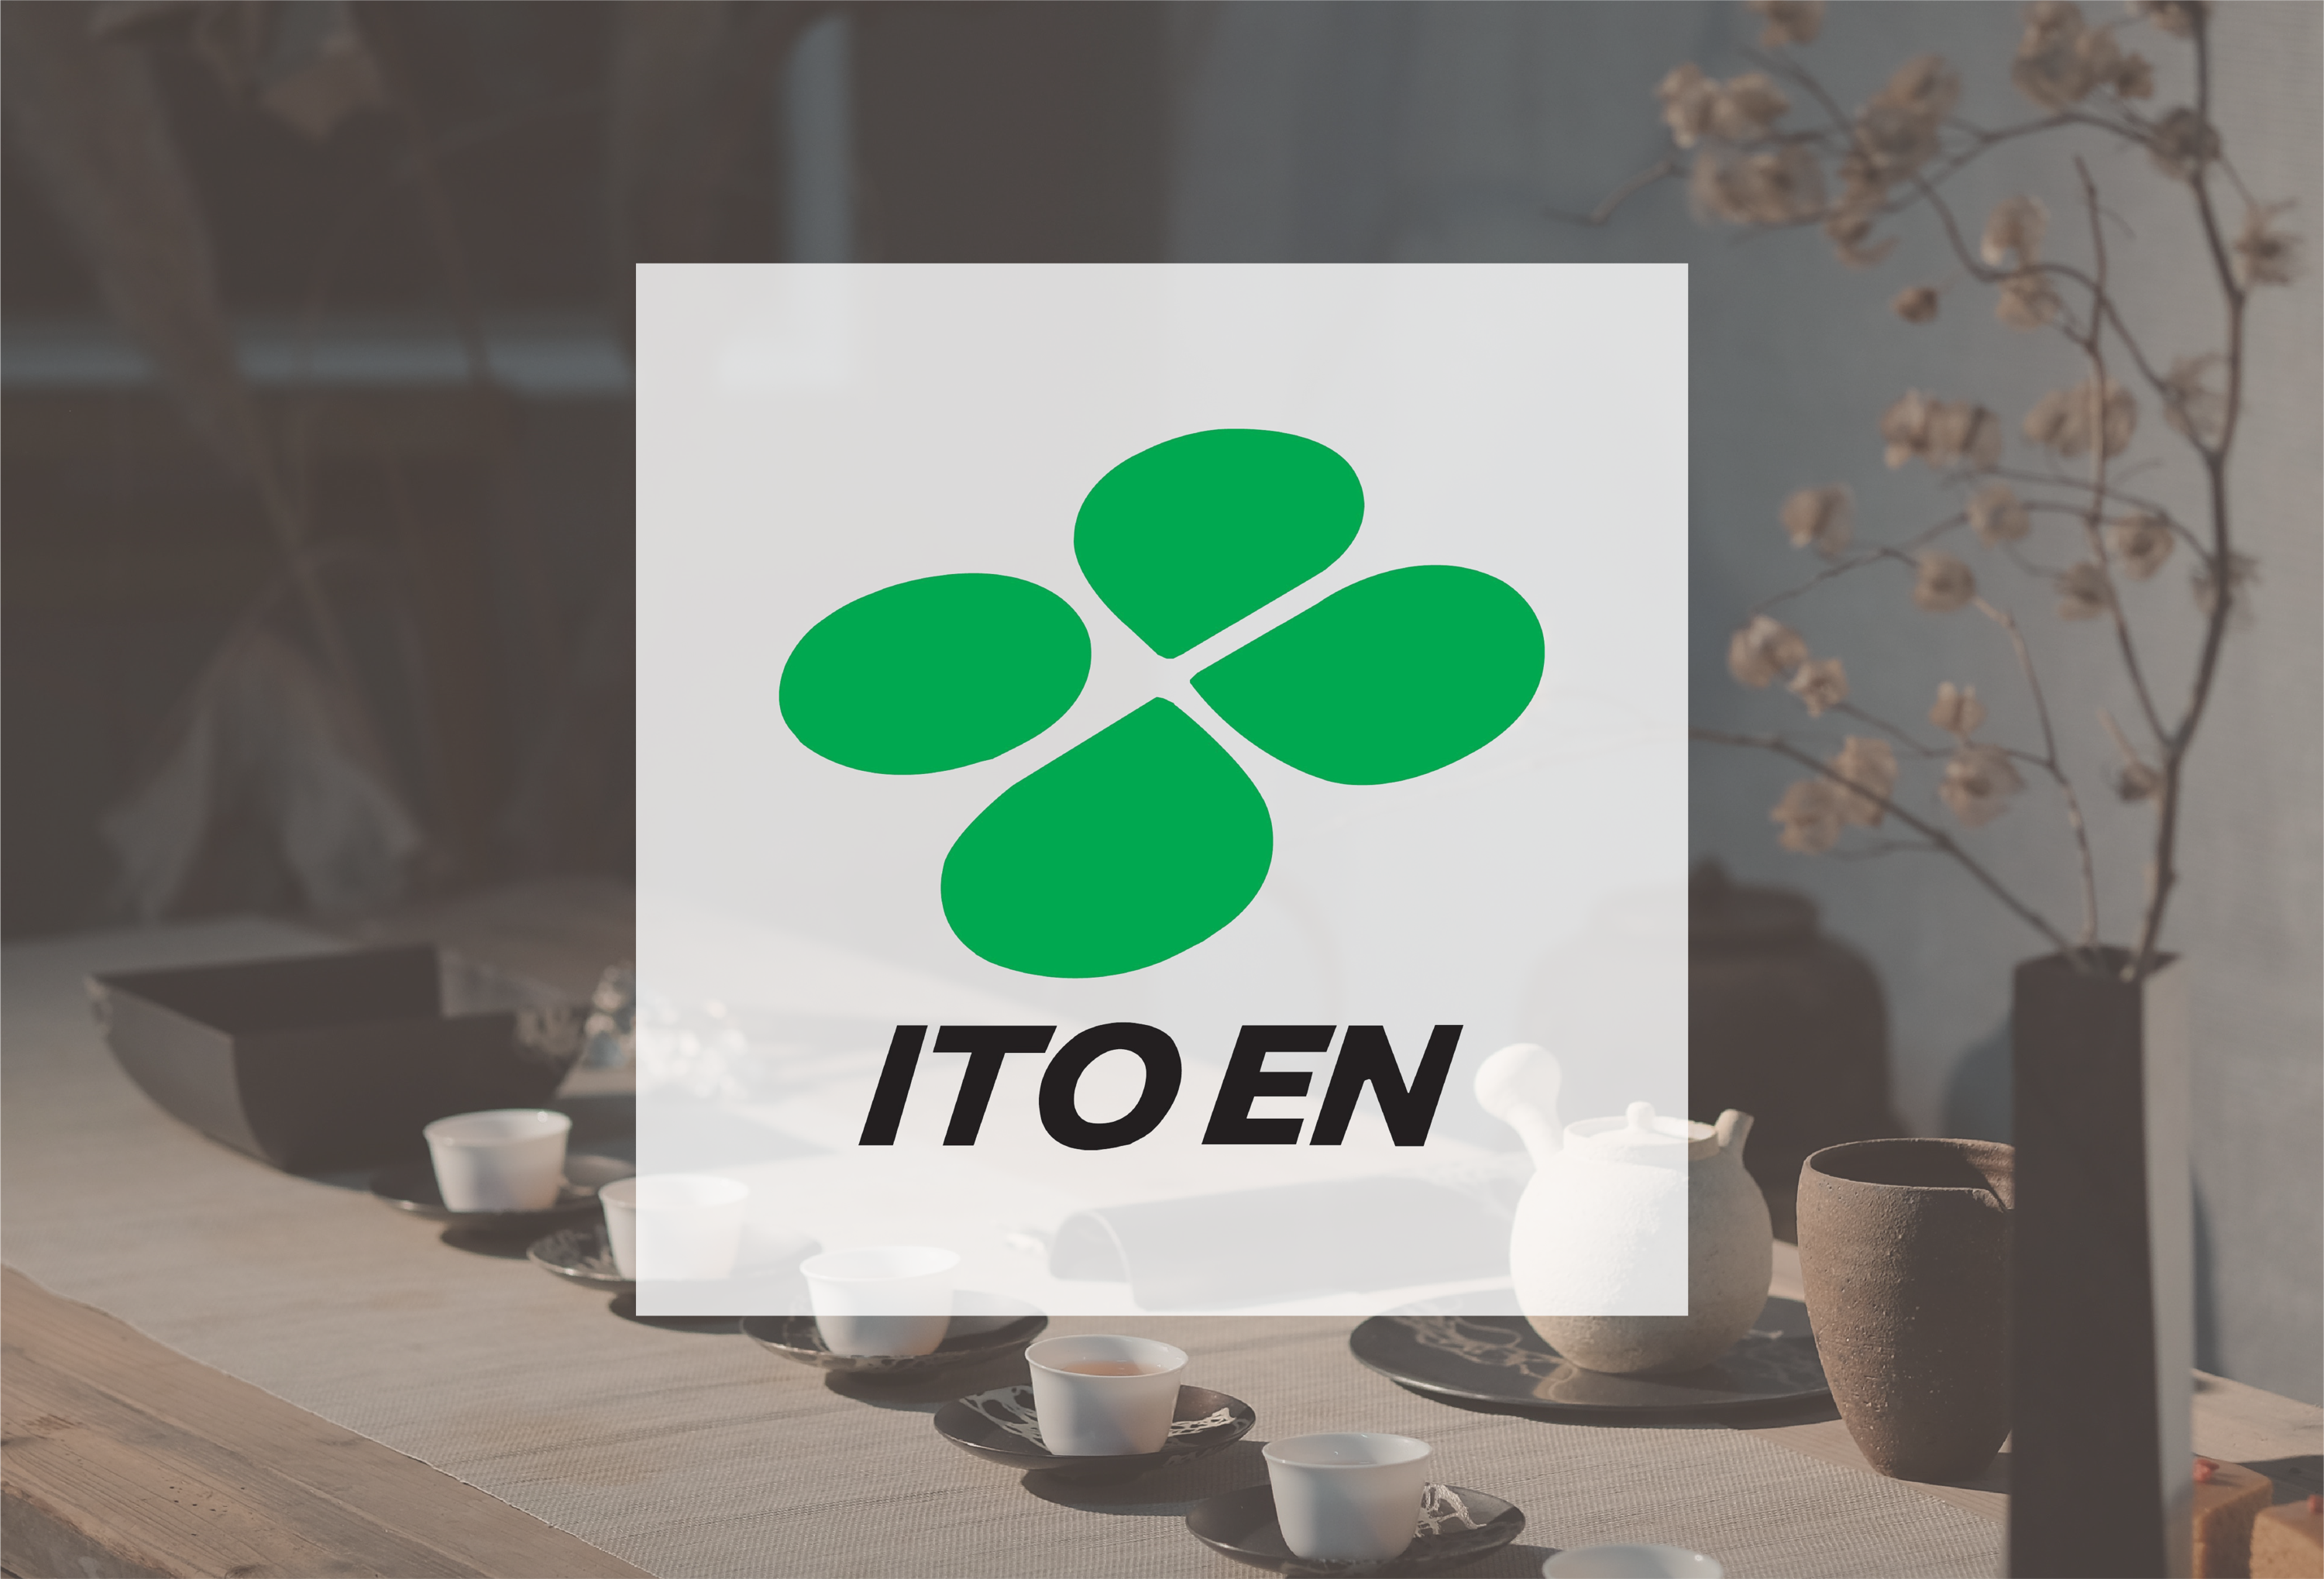 Ito En at Singapore Tea Festival 2018